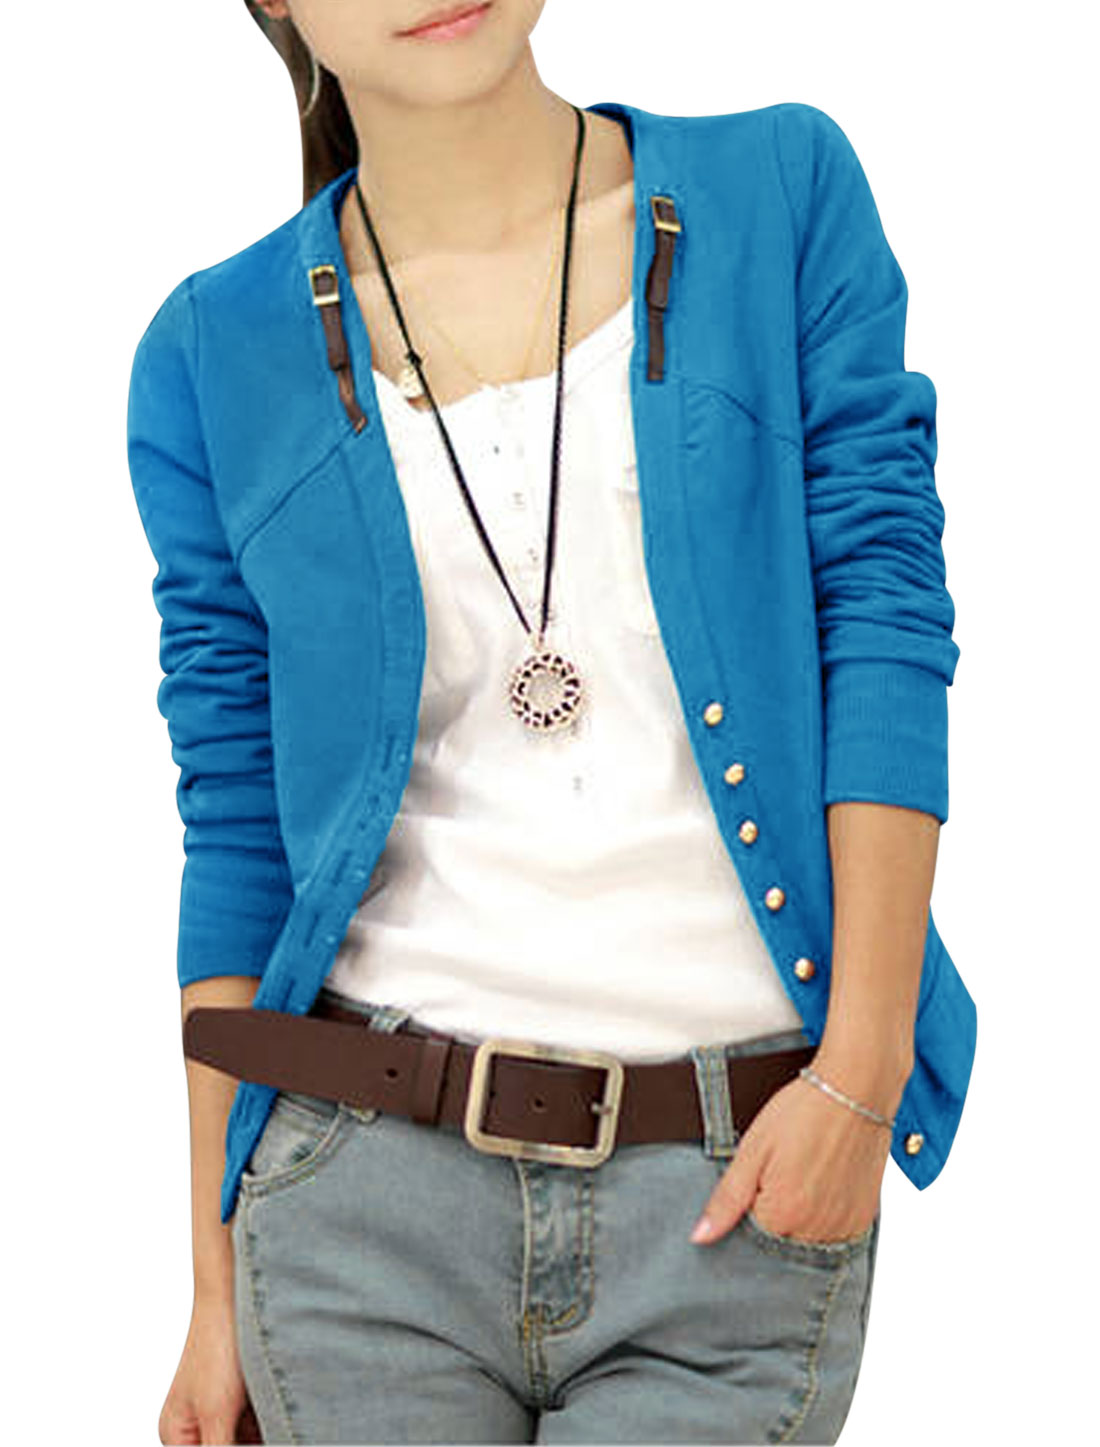 Lady Ribbing Cuffs w Hem Single Breasted Casual Jacket Blue S